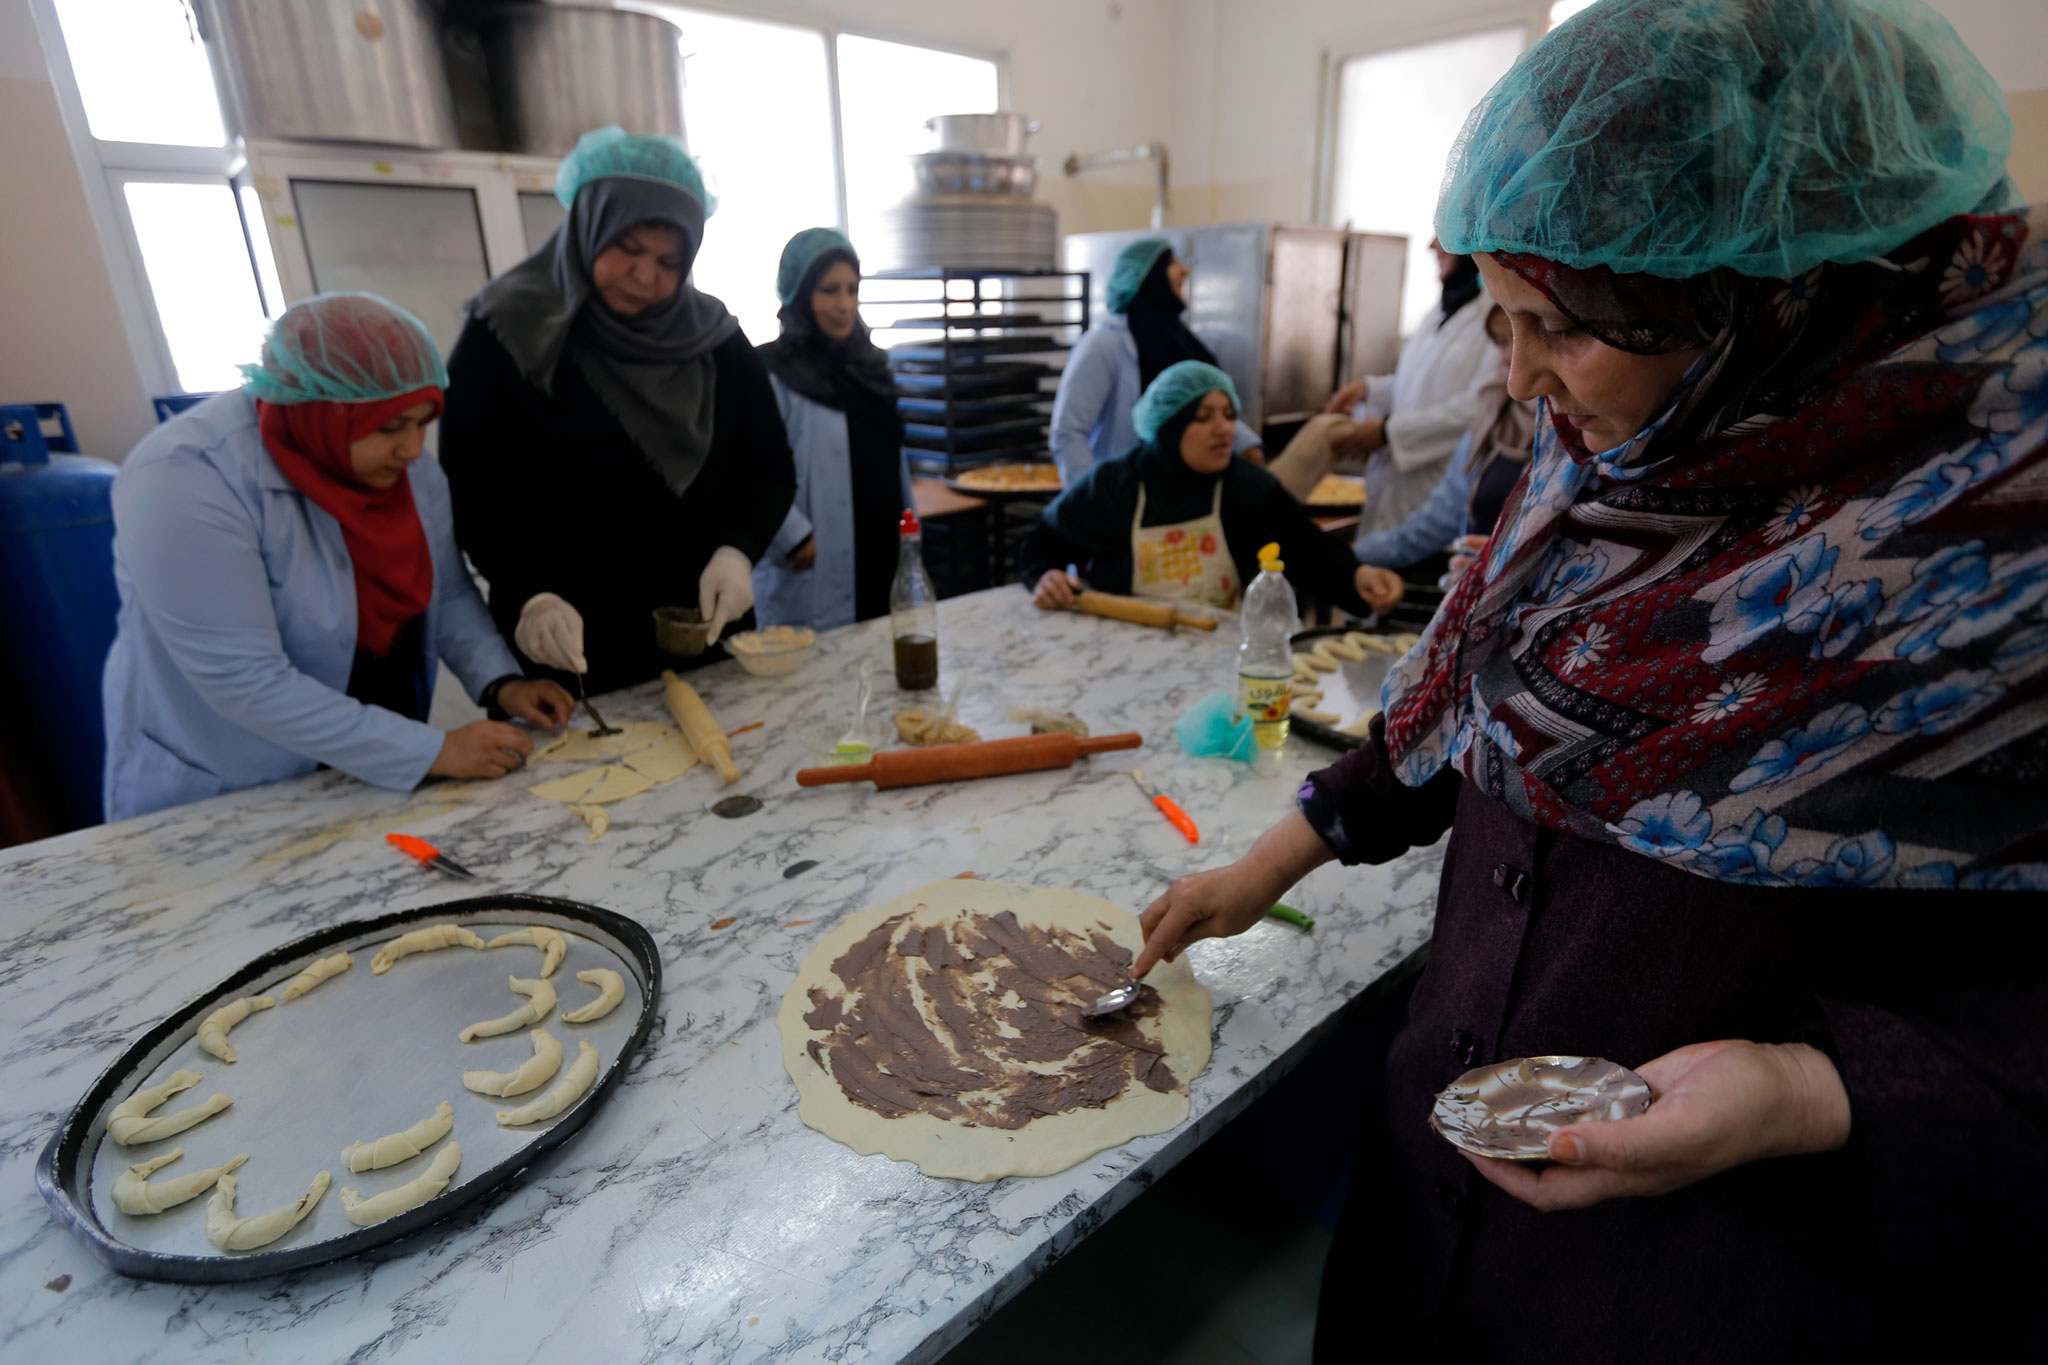 Latifa Al-Mabhouh (right) and other participants in the UNRWA Women Programme Centres (WPCs) food processing training in Jabalia, northern Gaza Strip. © 2017 UNRWA Photo by Rushdi Al-Saraj